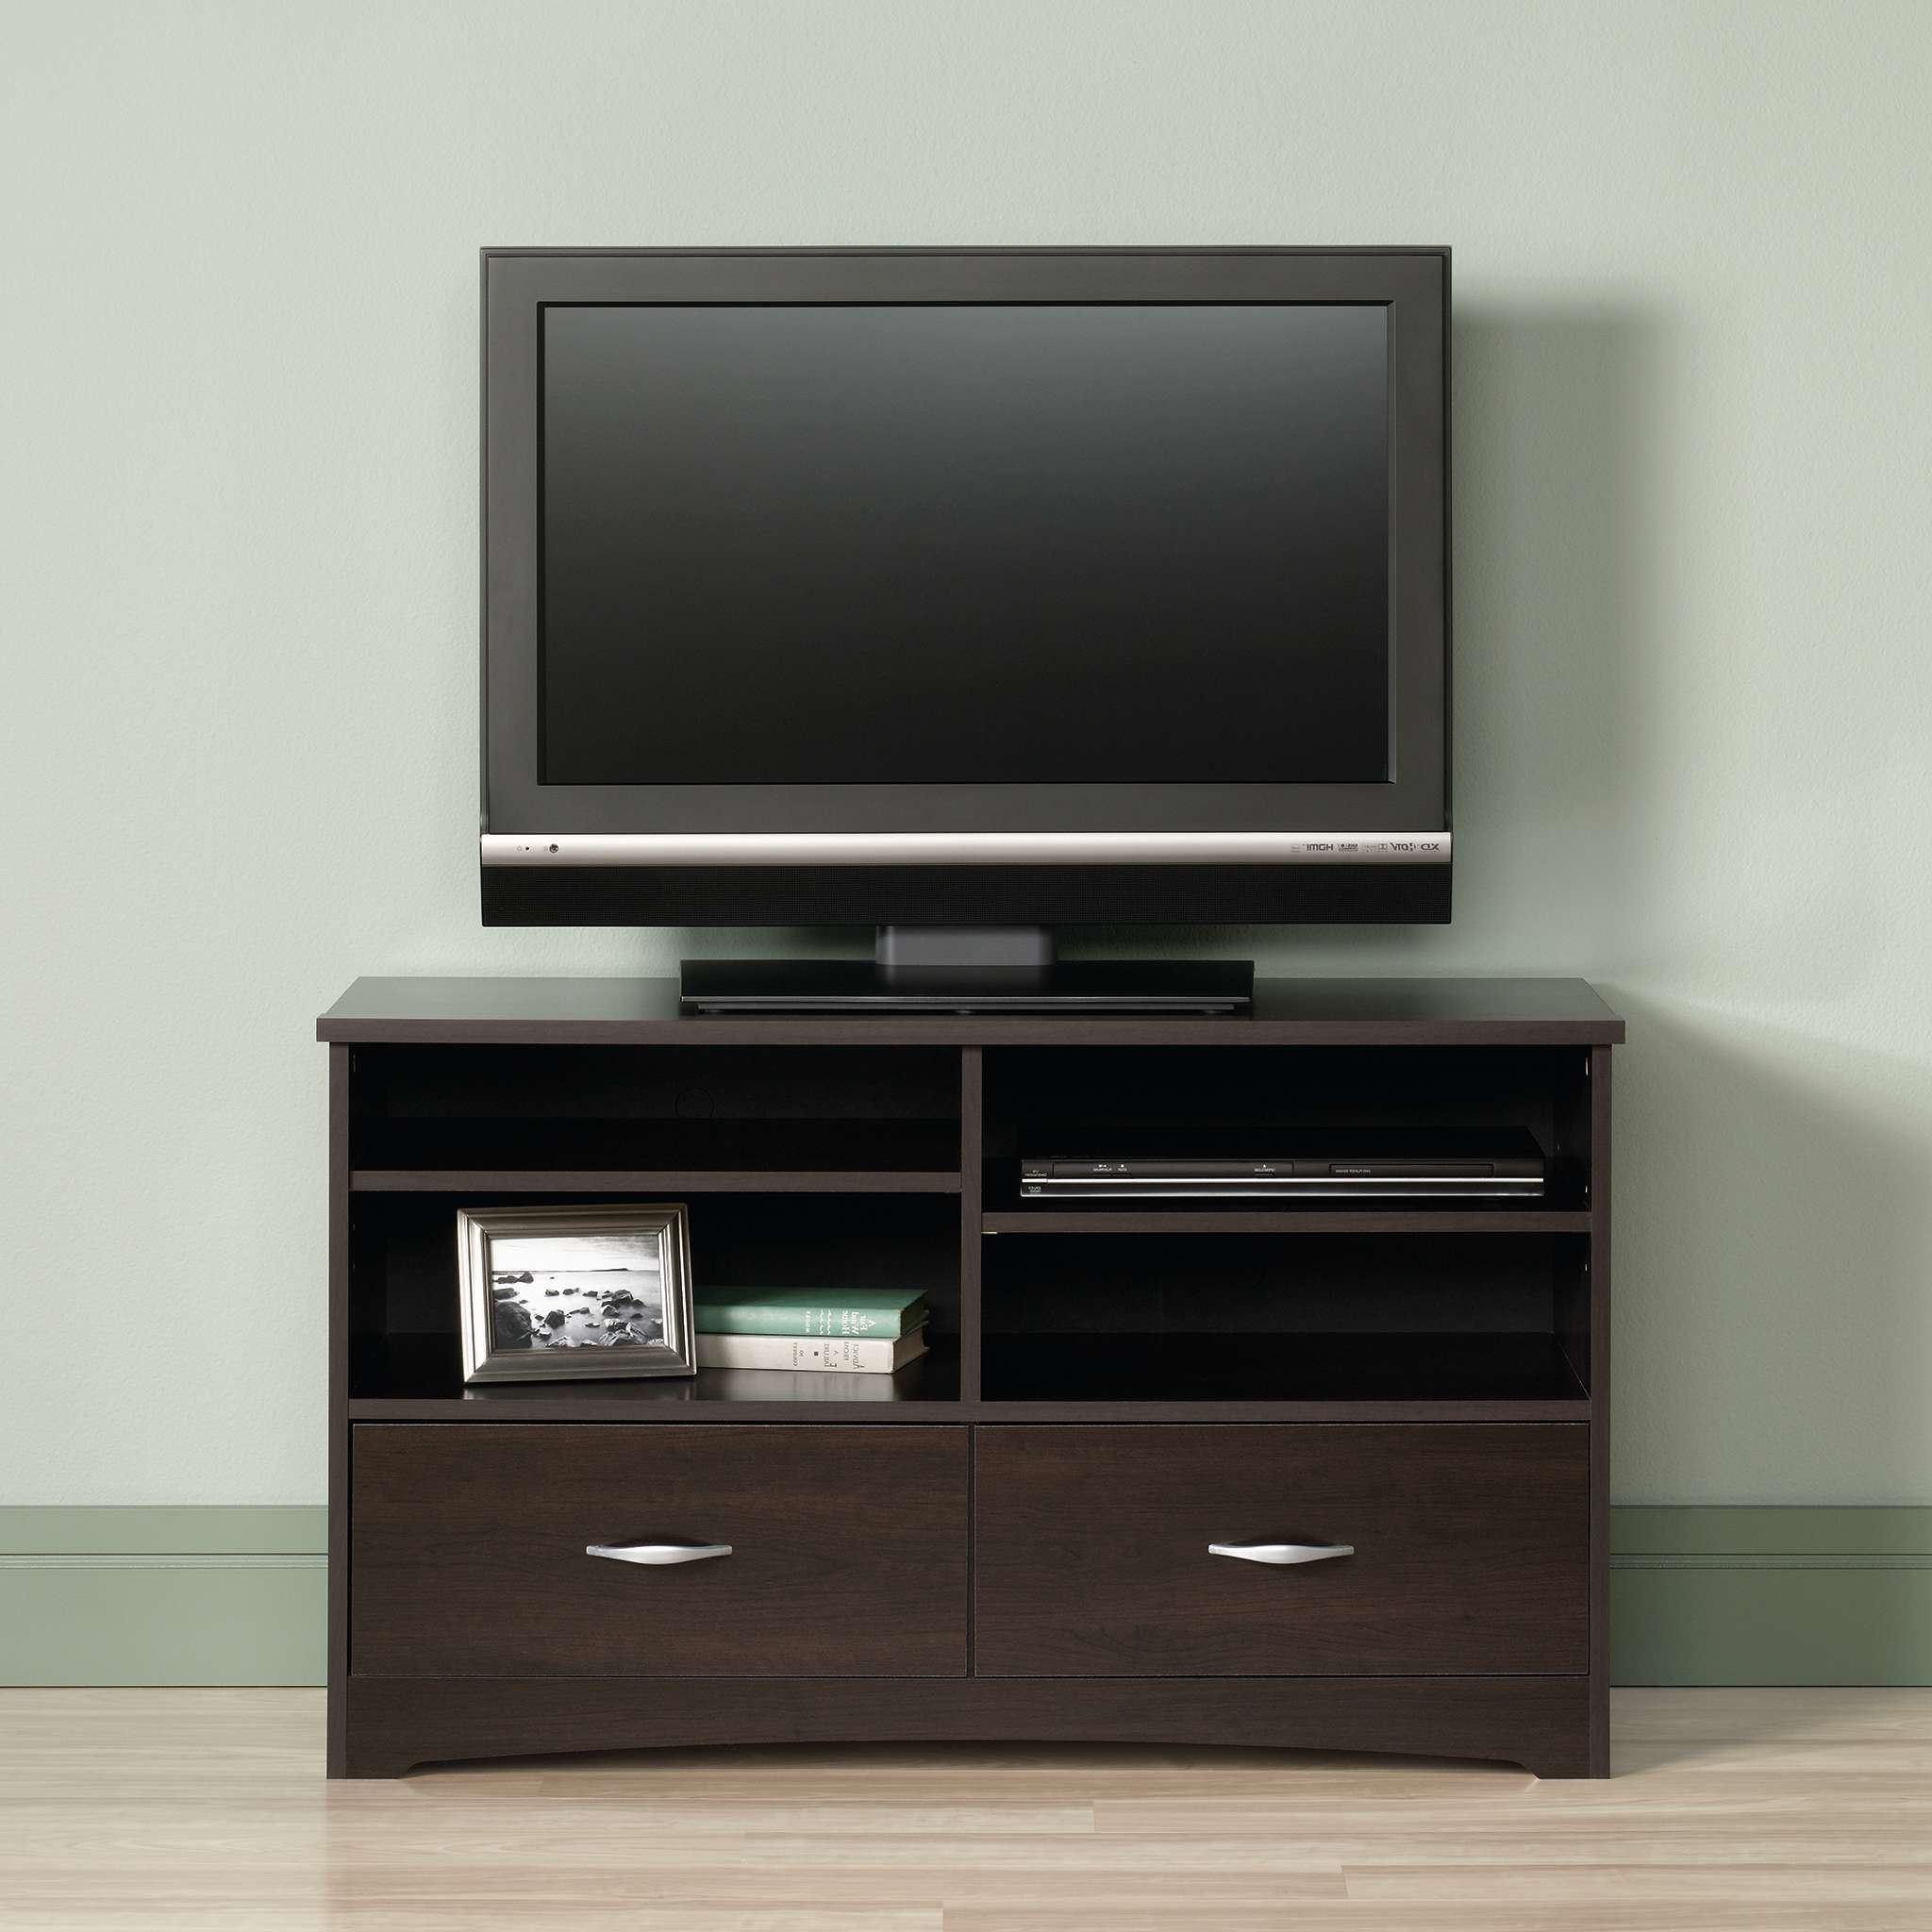 Sauder Tv Stands Pertaining To Stand And Deliver Tv Stands (View 6 of 20)